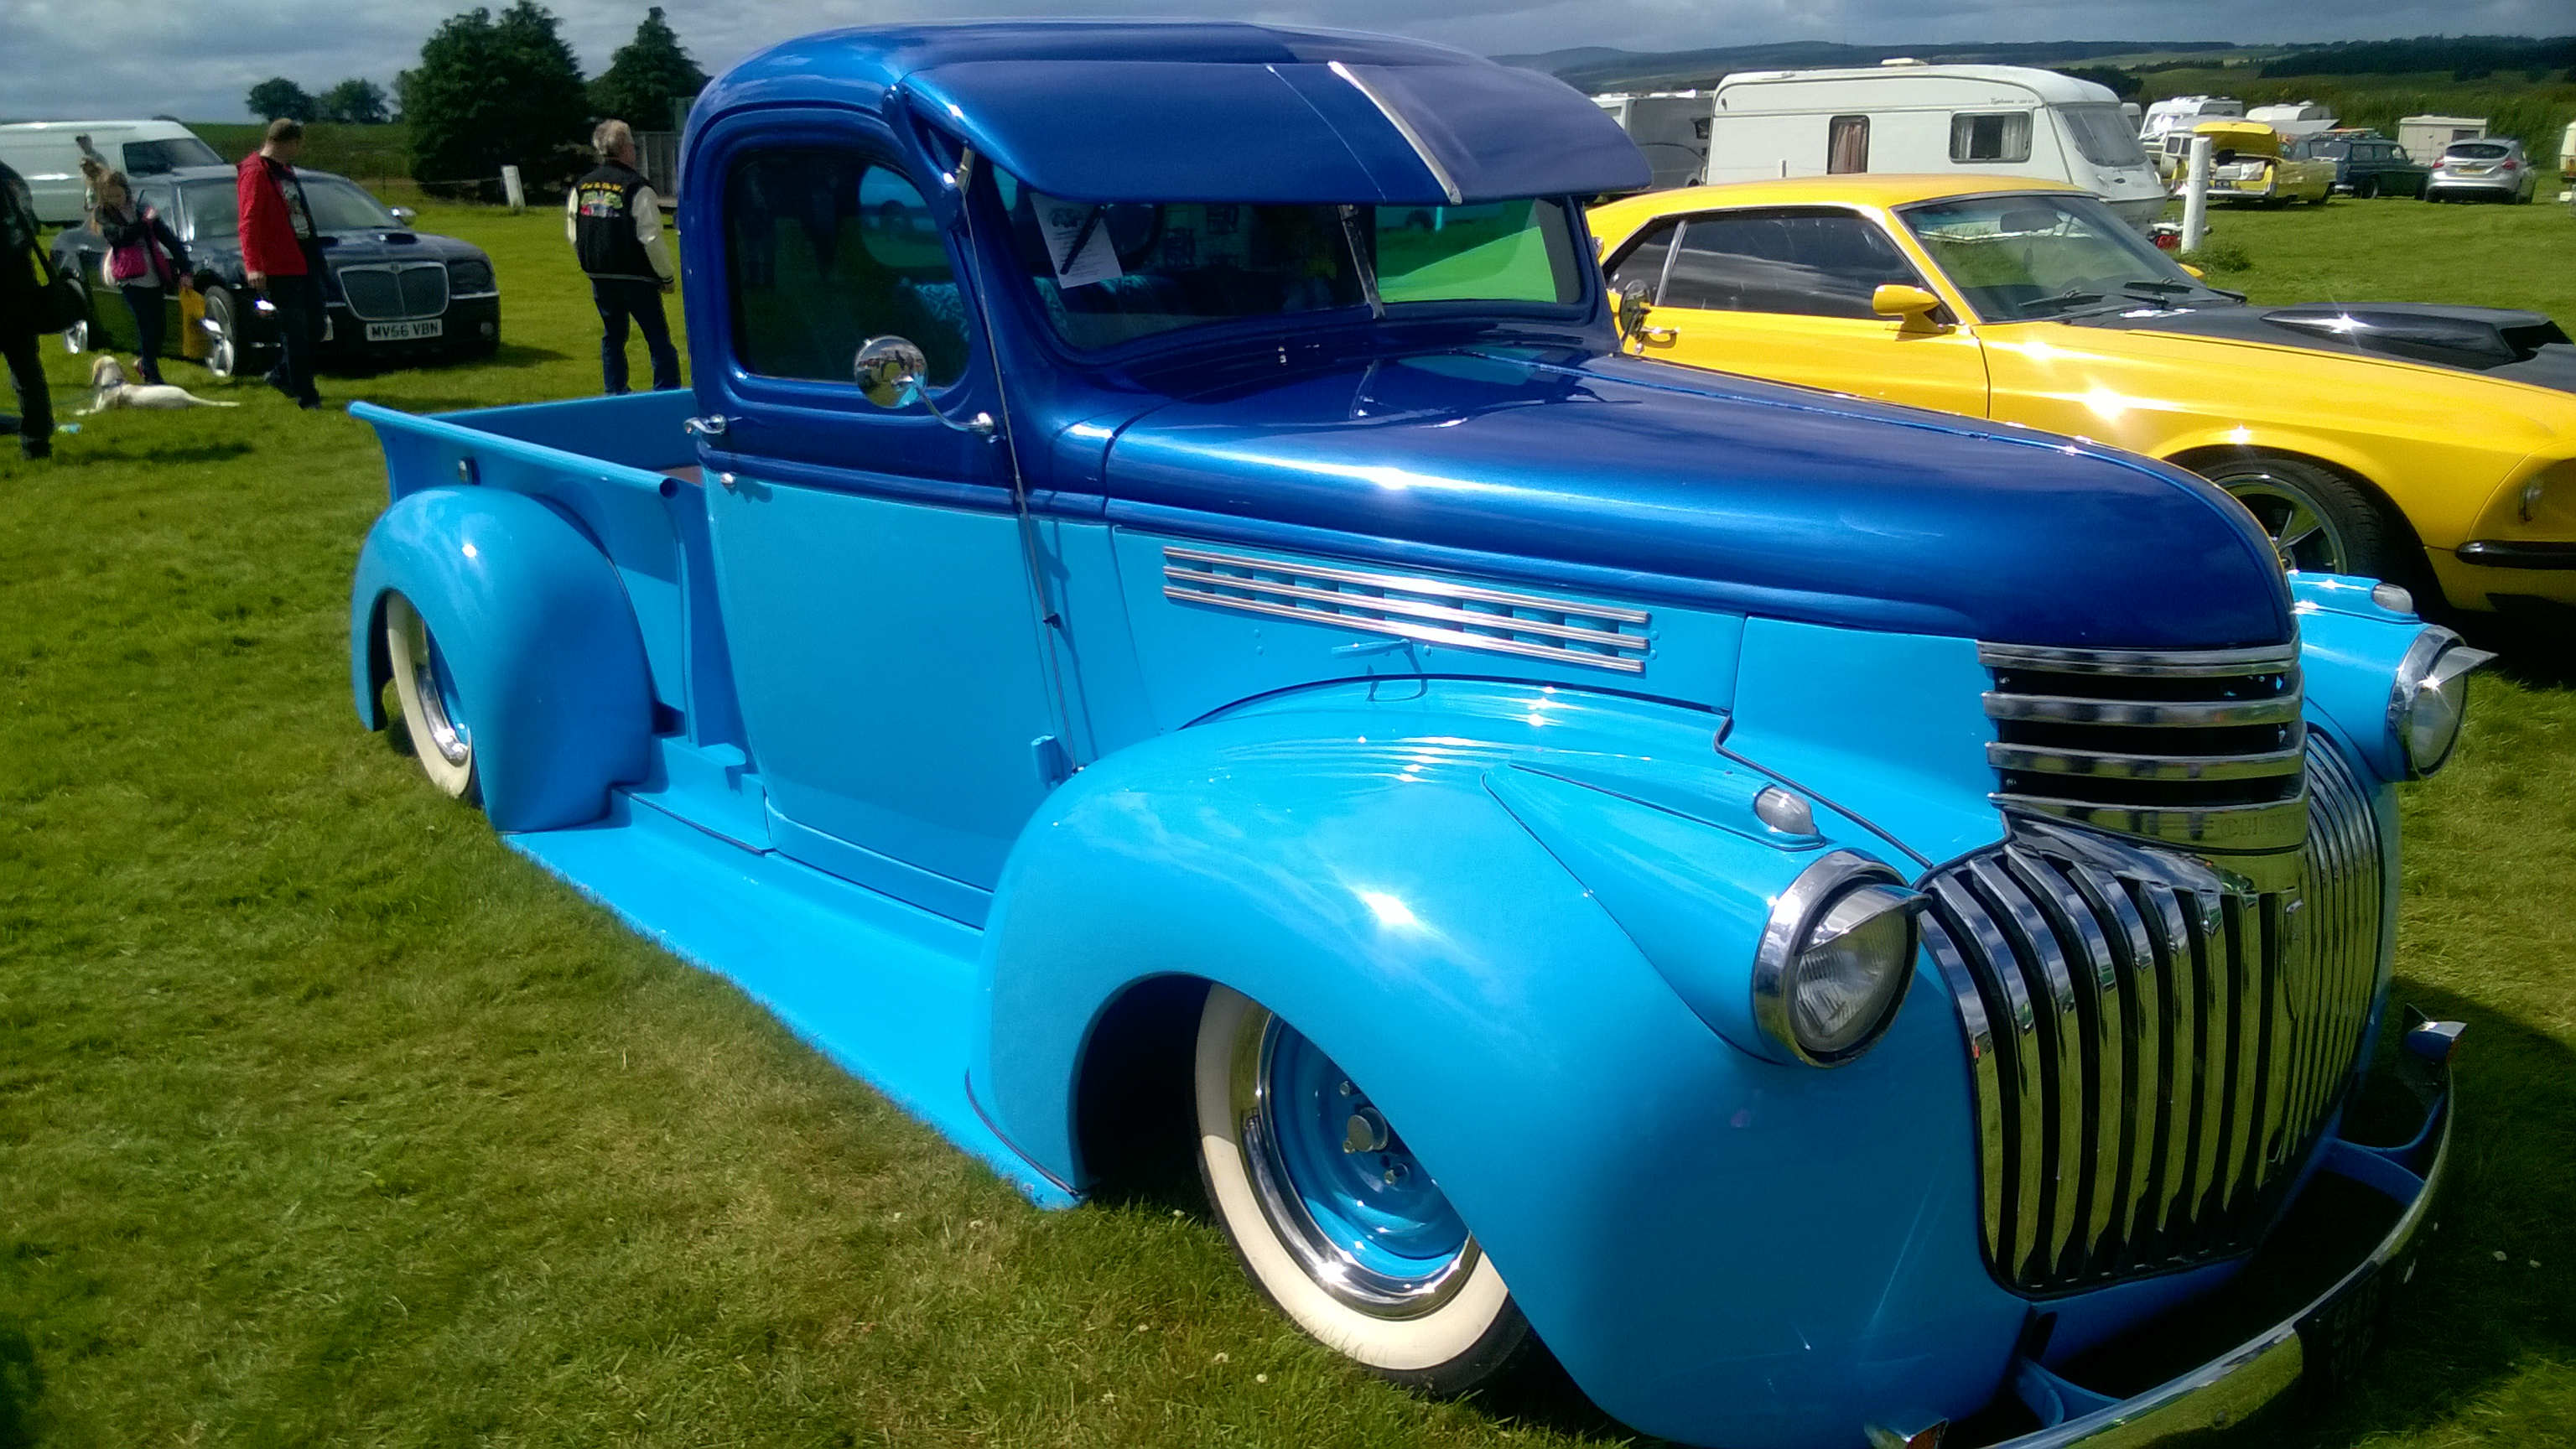 Hot Rod Show Returns To Blackford Lang Toon Times - Hot rod show 2018